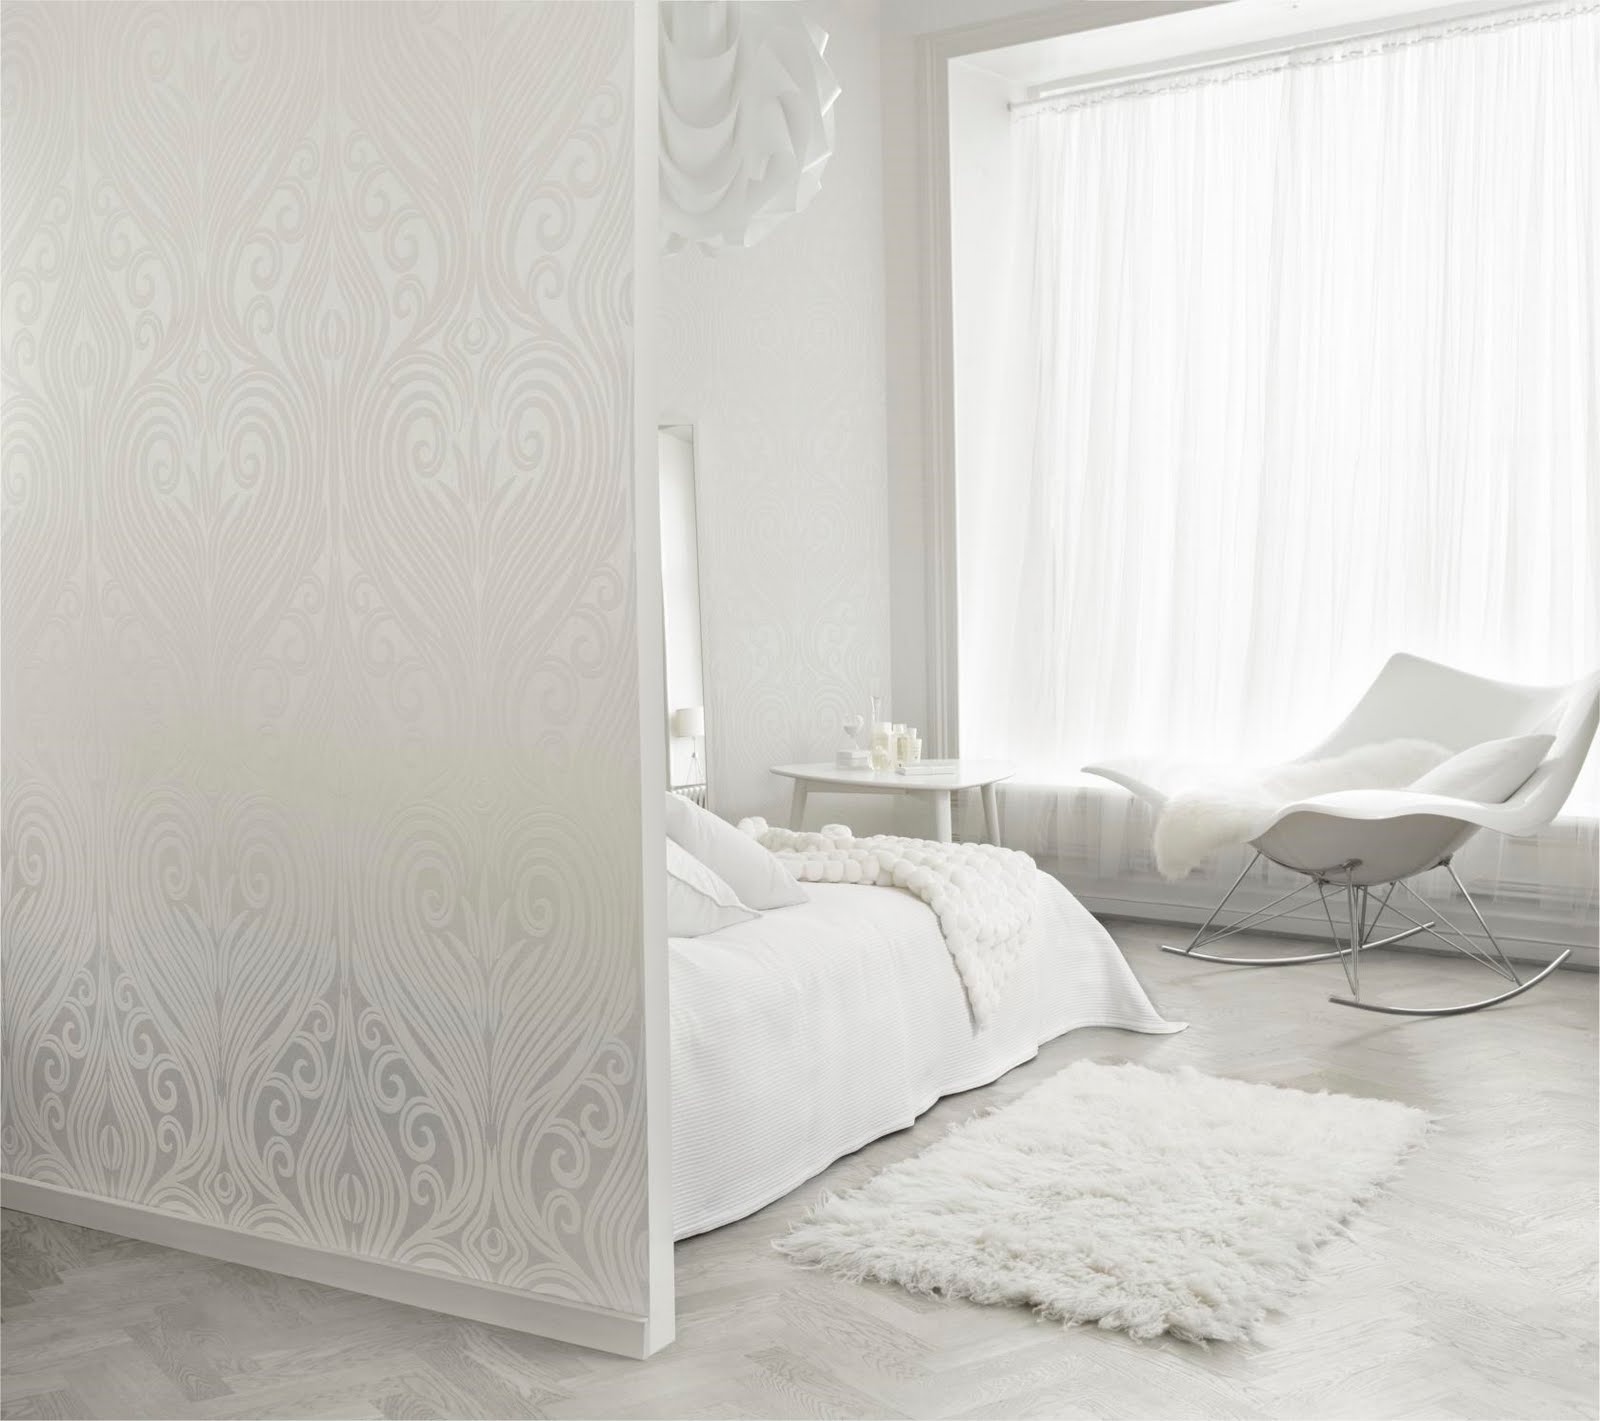 Bedroom Decor White Walls: Design Shimmer: White Walls